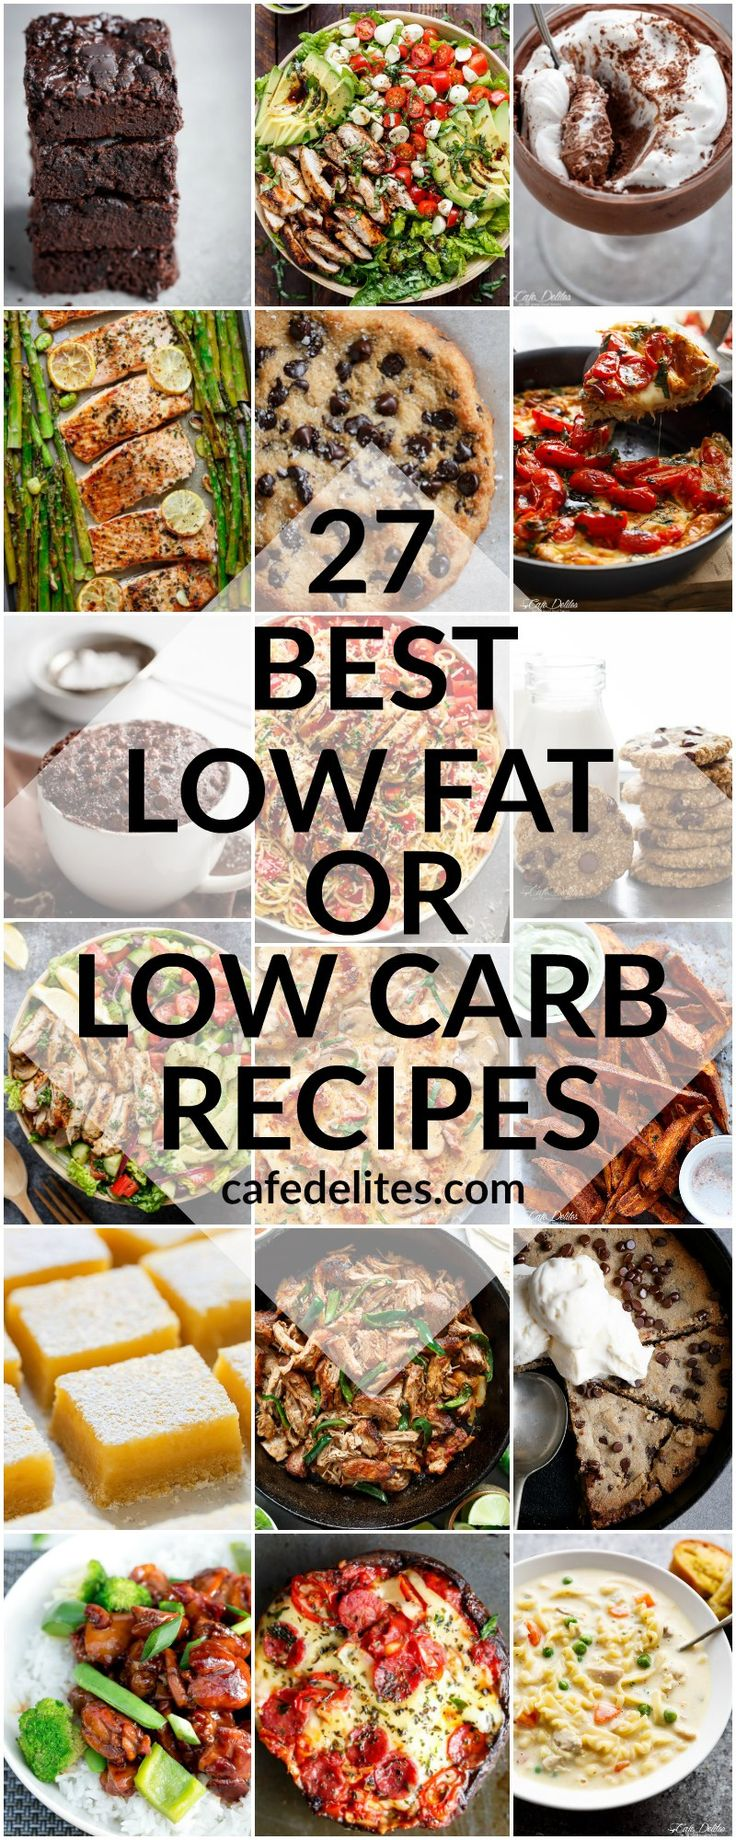 27 BEST LOW FAT & LOW CARB RECIPES FOR 2017 | http://cafedelites.com